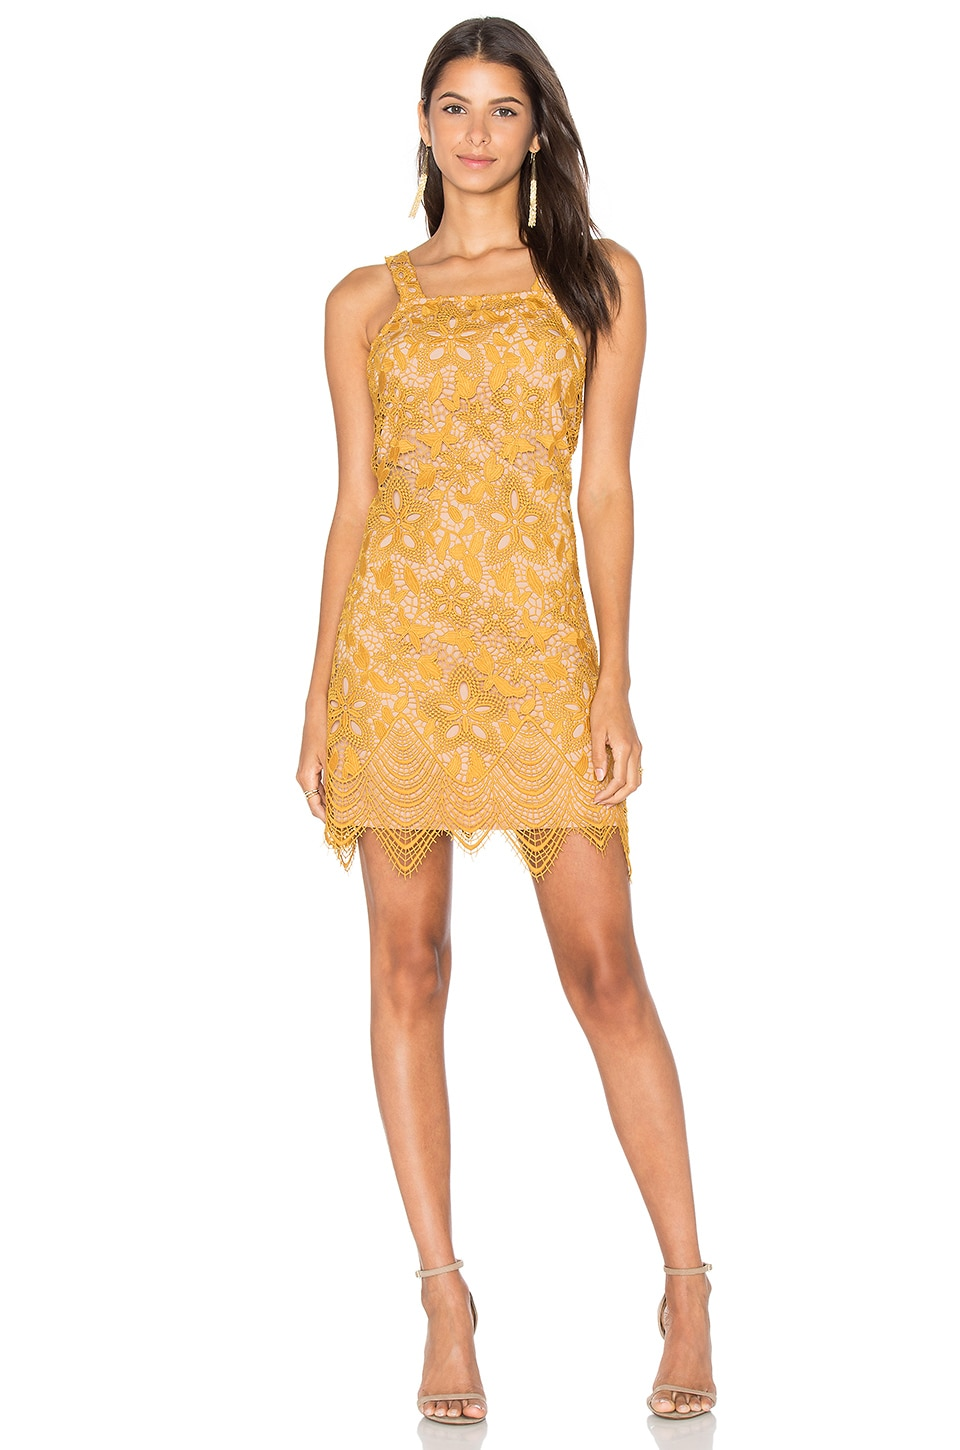 Orleans Lace Mini Dress by WAYF